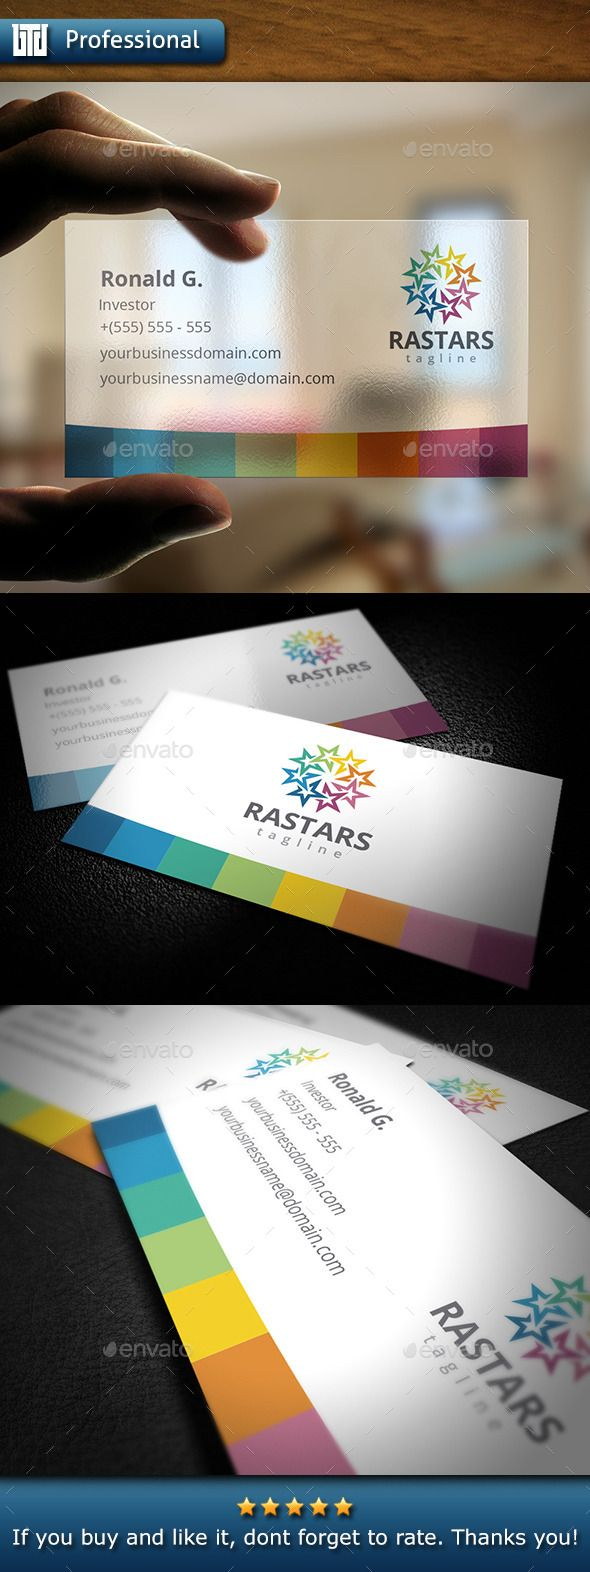 75 best Business Cards images on Pinterest | Lipsense business cards ...